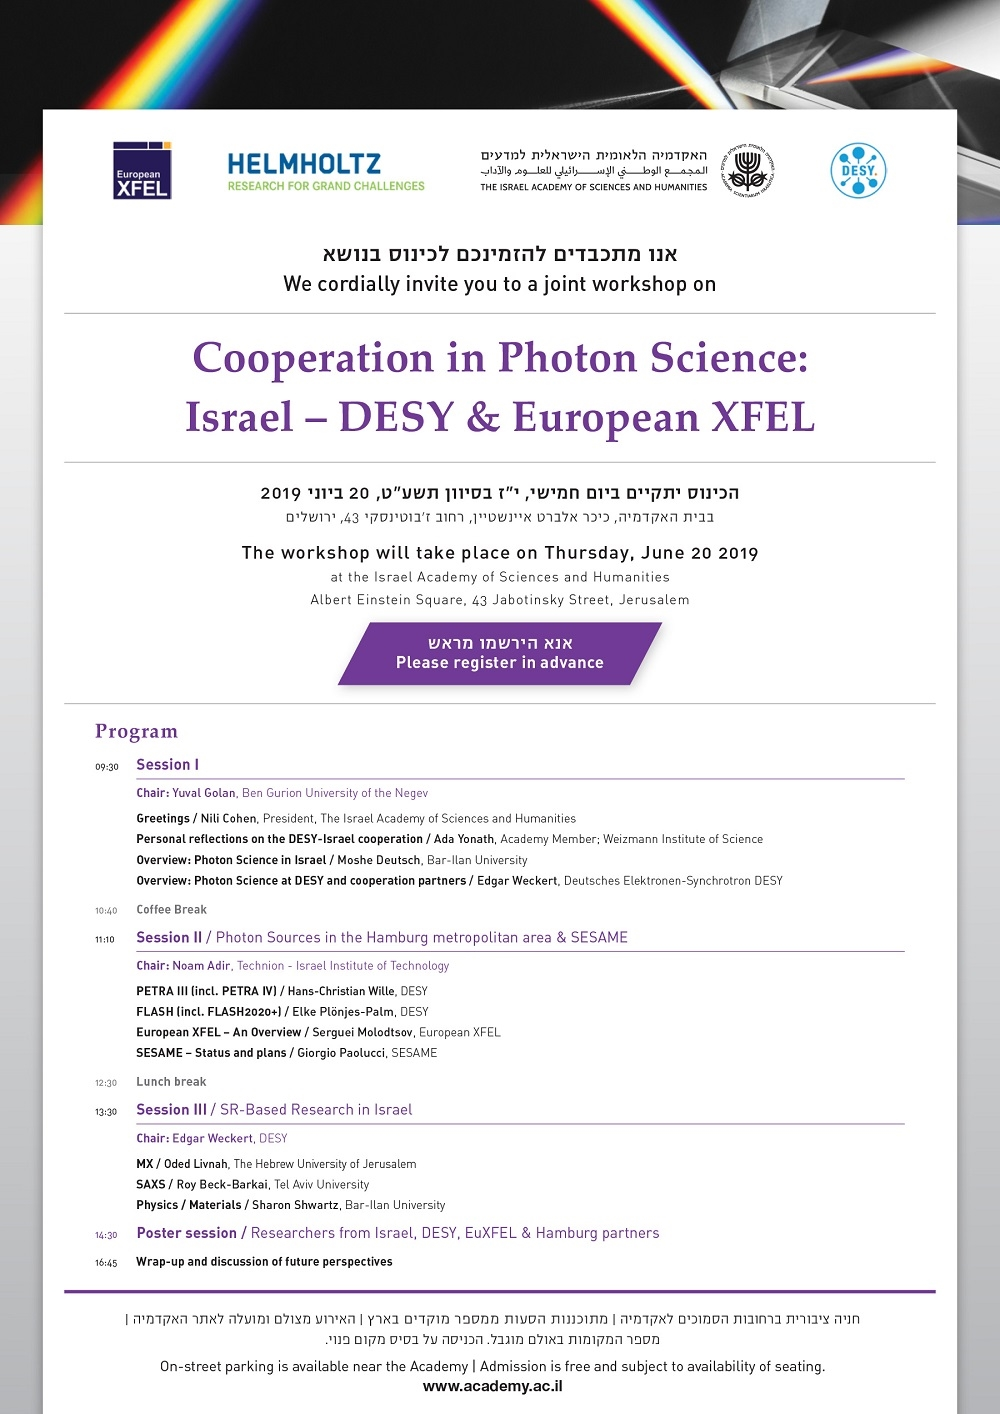 Joint Workship: Cooperation in Photon Science - Israel - DESY & European XFEL